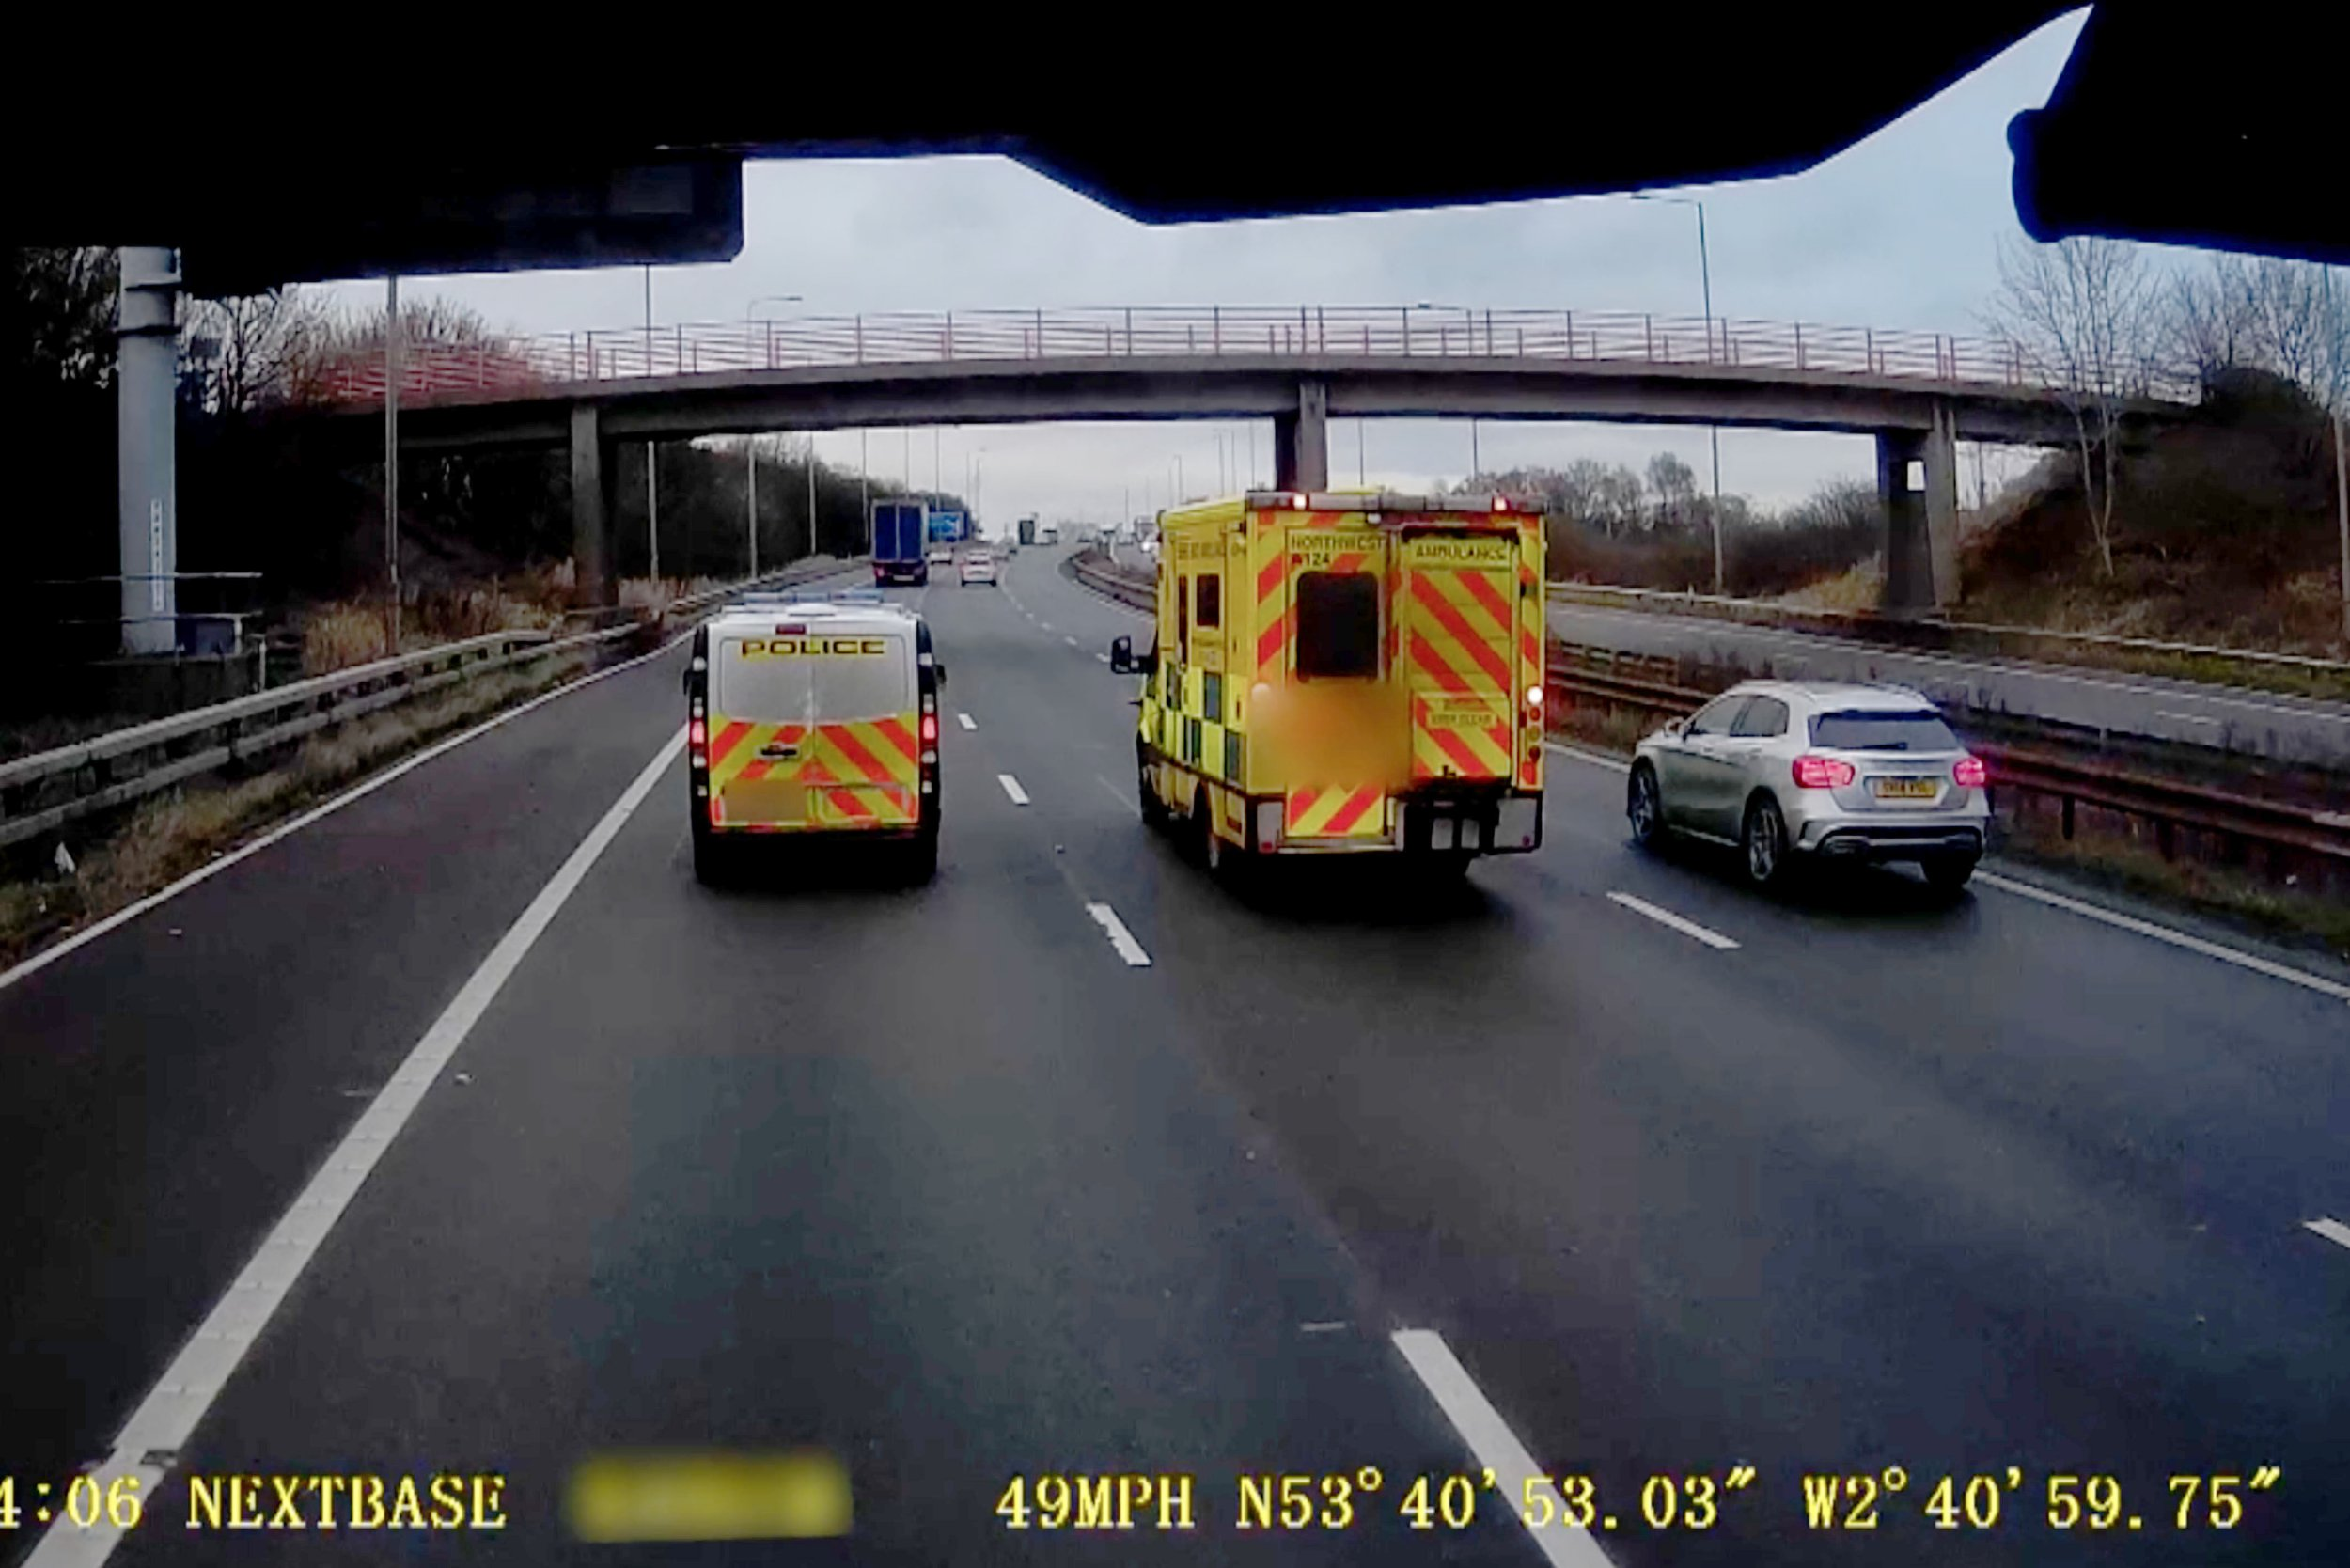 PIC FROM MERCURY PRESS (PICTURED: THE DRIVERS OF THE TWO EMERGENCY VEHICLES APPEAR TO BE TALKING TO EACH OTHER ON THE LEYLAND STRETCH OF M6 MOTORWAY IN LANCASHIRE) This is the moment a police van and an ambulance slowed down ëdangerouslyí to just 32mph on a busy motorway so the drivers could have a CHAT through the window, a fellow motorist claims. Lorry driver Ian Price said he was stunned as the two vehicles hit the brakes and began 'crawling' along the northbound M6 in Lancashire. The emergency services, who were occupying lanes one and two of the motorway, didnít have their flashing lights on and travelled at just half the road's speed limit near junction 28 in Leyland. SEE MERCURY COPY